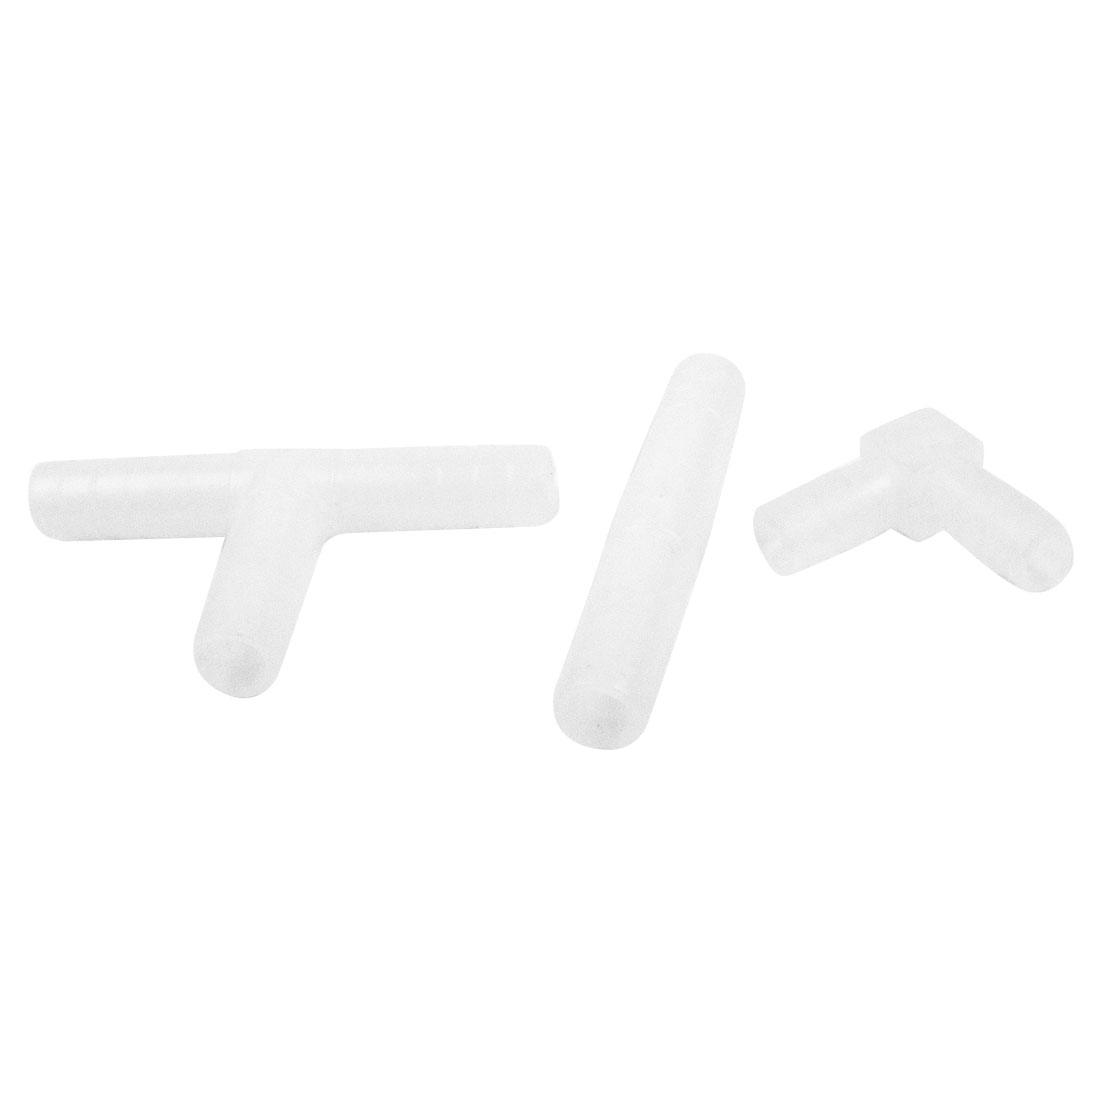 3 in 1 Fish Tank White Plastic Right Angle Connector 8mm Dia for Air Line Tubing